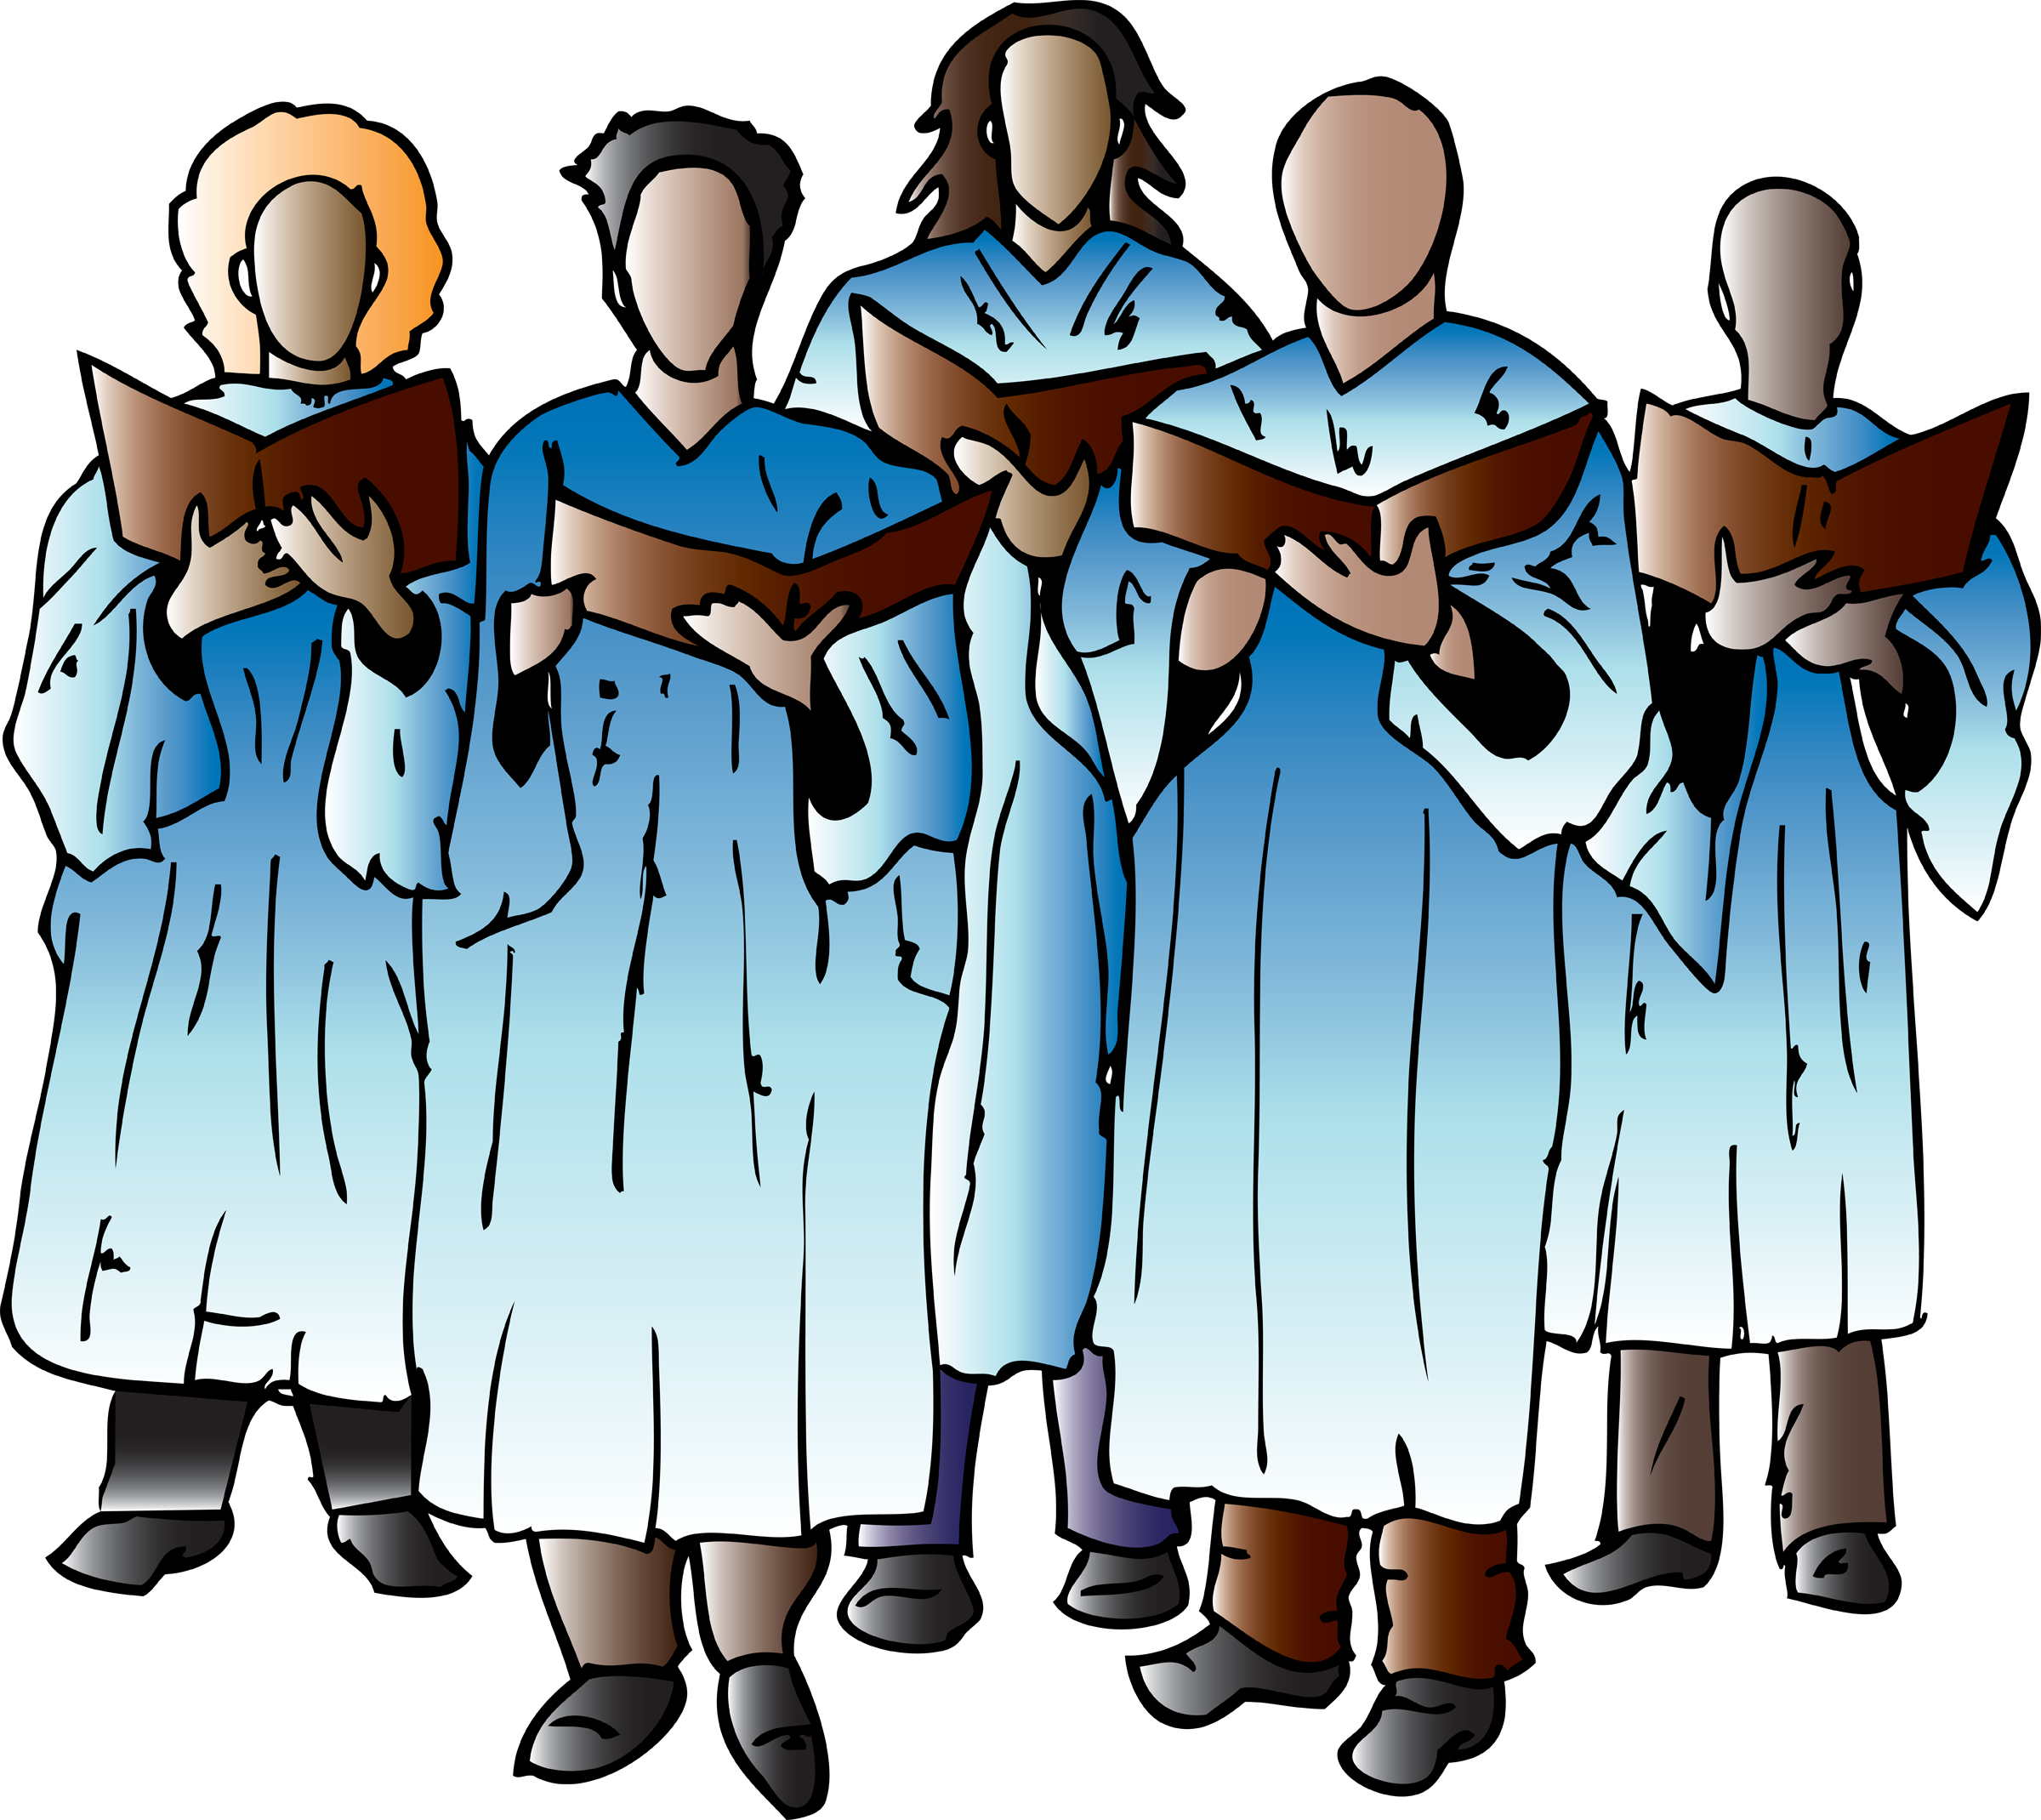 choir clipart male